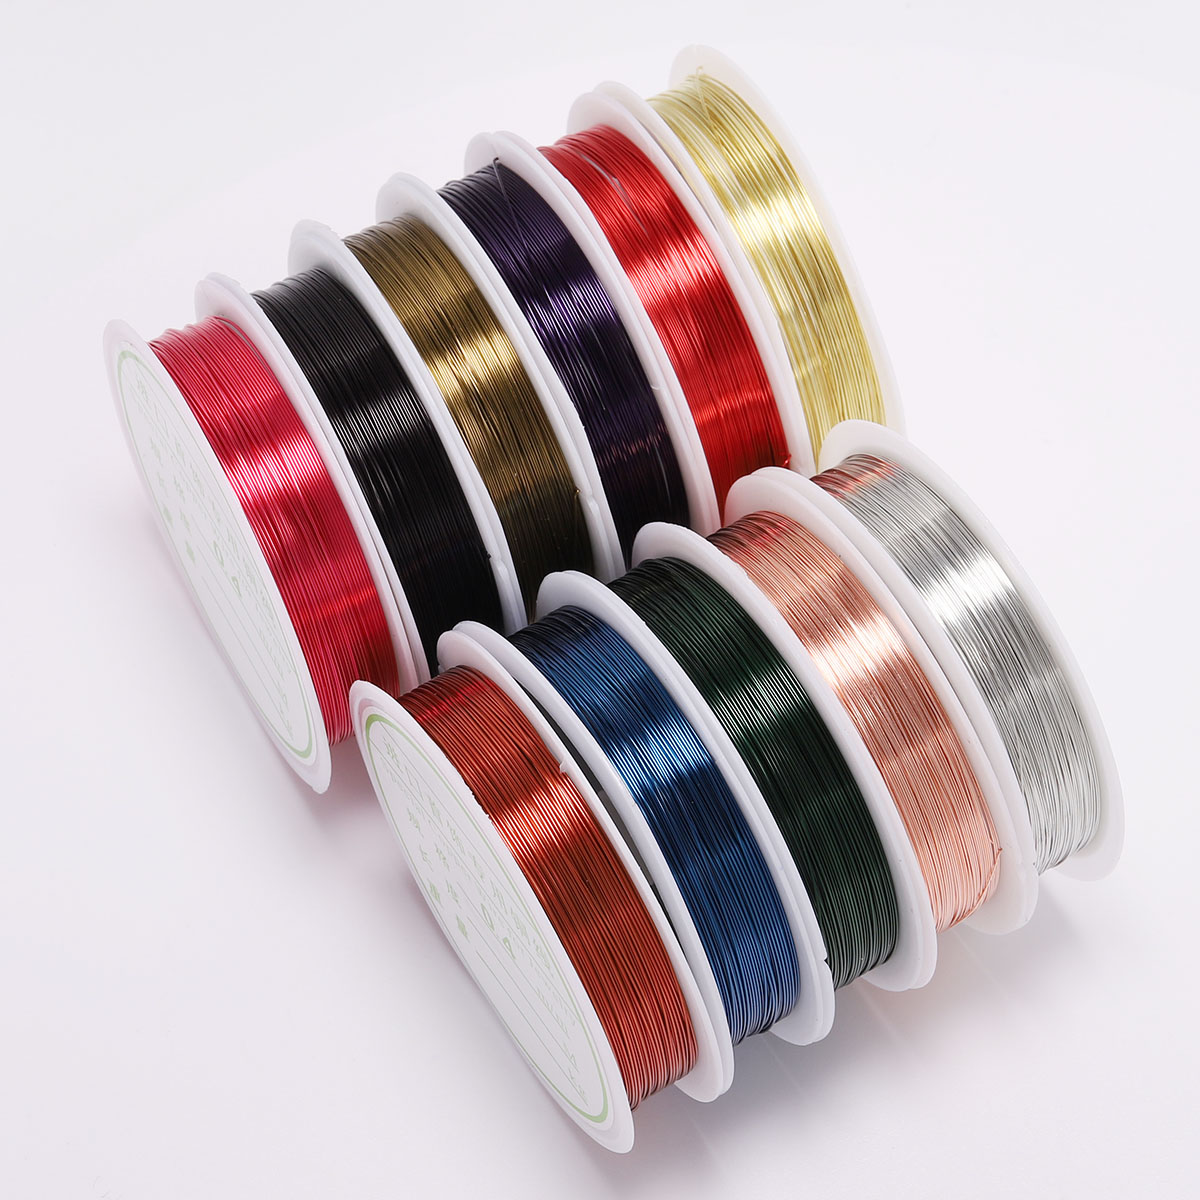 1 Roll 0.3 0.4mm Wire Diameter Roll Copper Wire Beading Cord  Fit Craft Beading Wire Jewelry Making Cord For DIY Jewelry Making